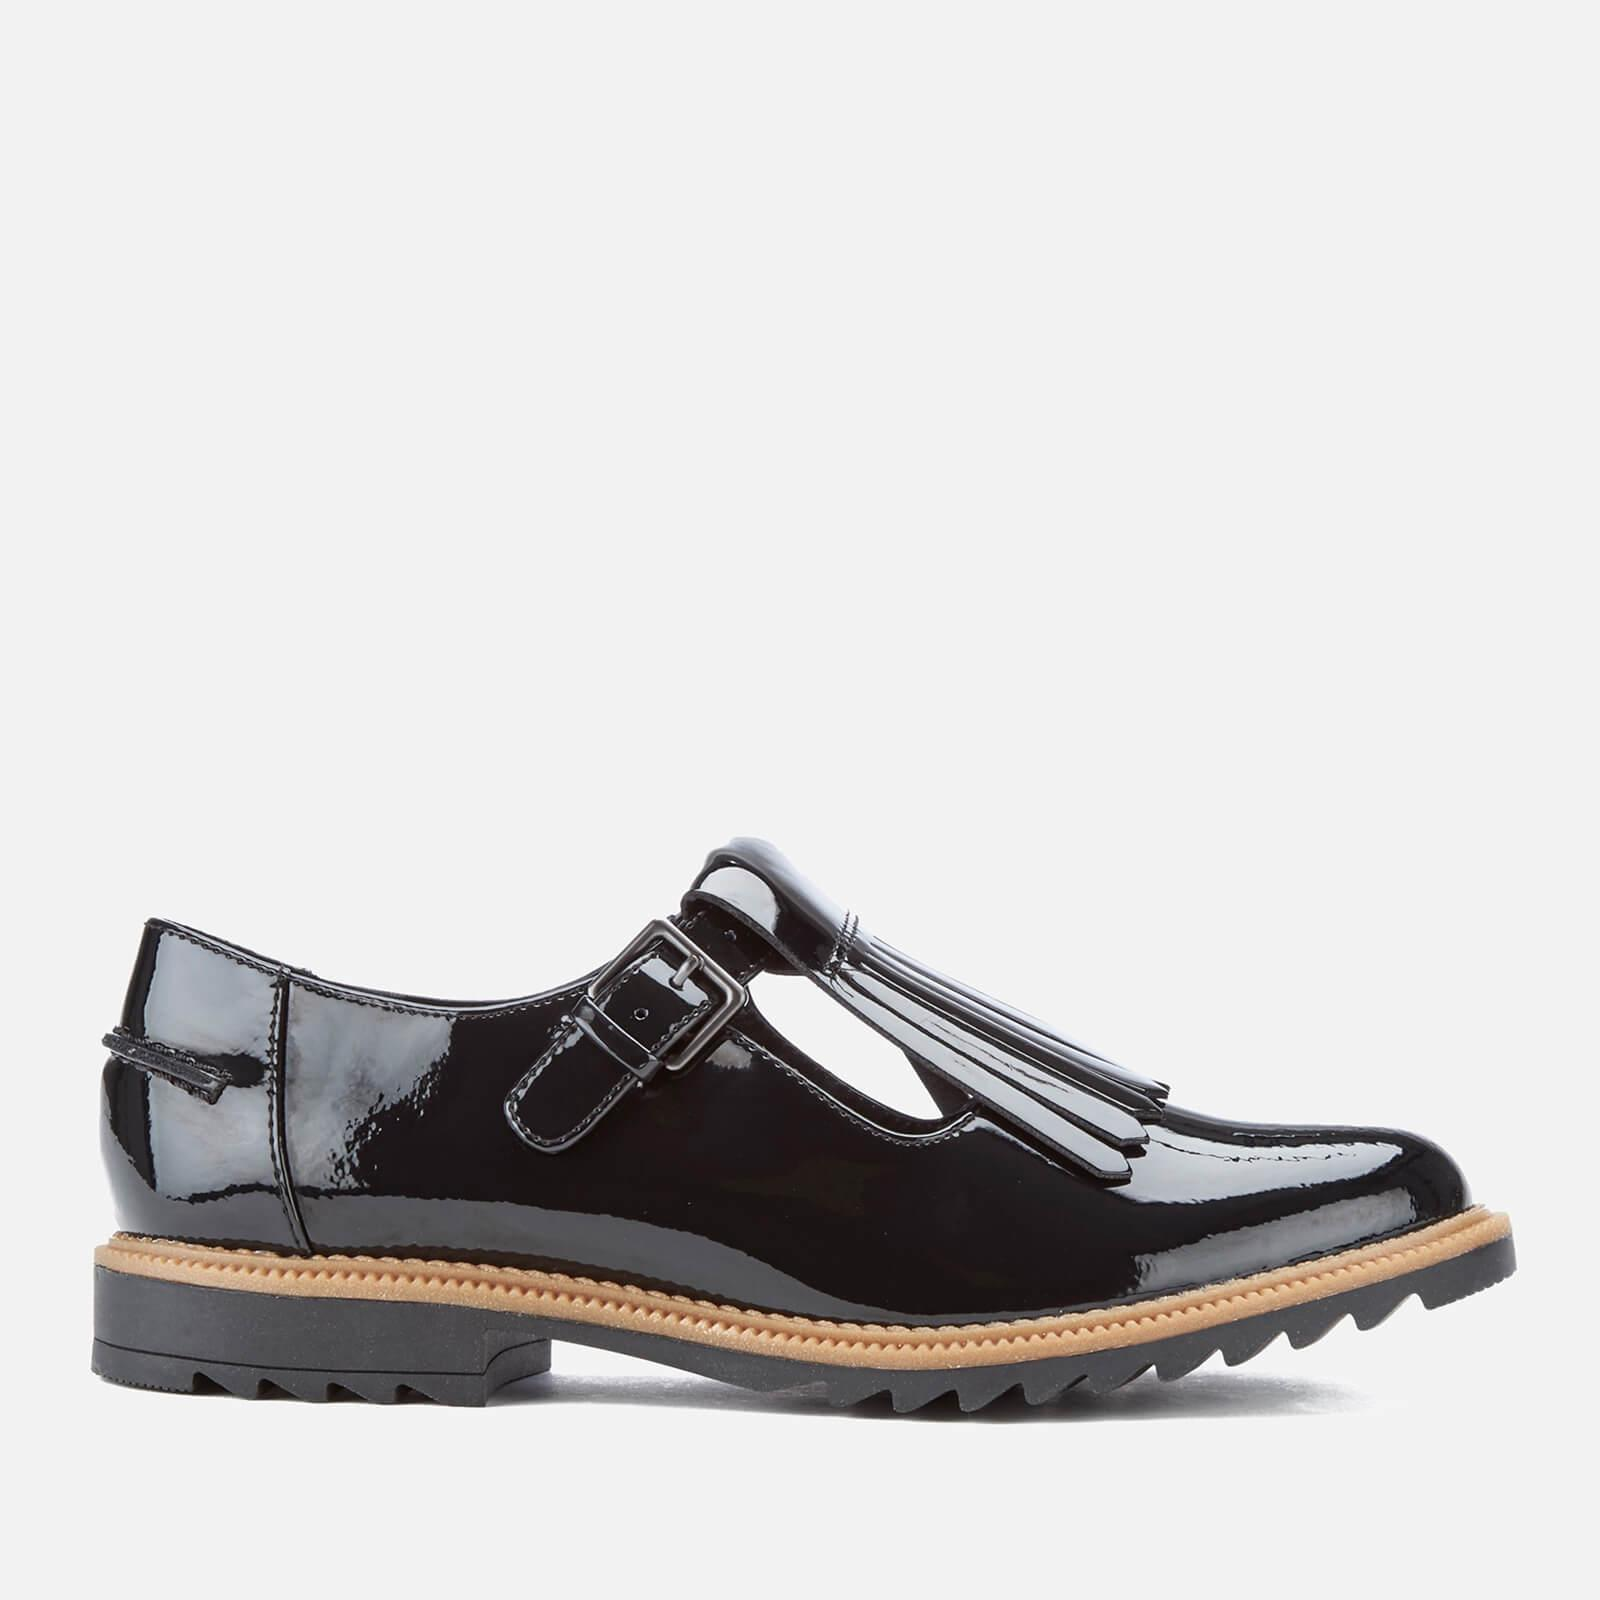 9f9964afec5d Clarks Griffin Mia Patent Frill T Bar Shoes in Black - Lyst